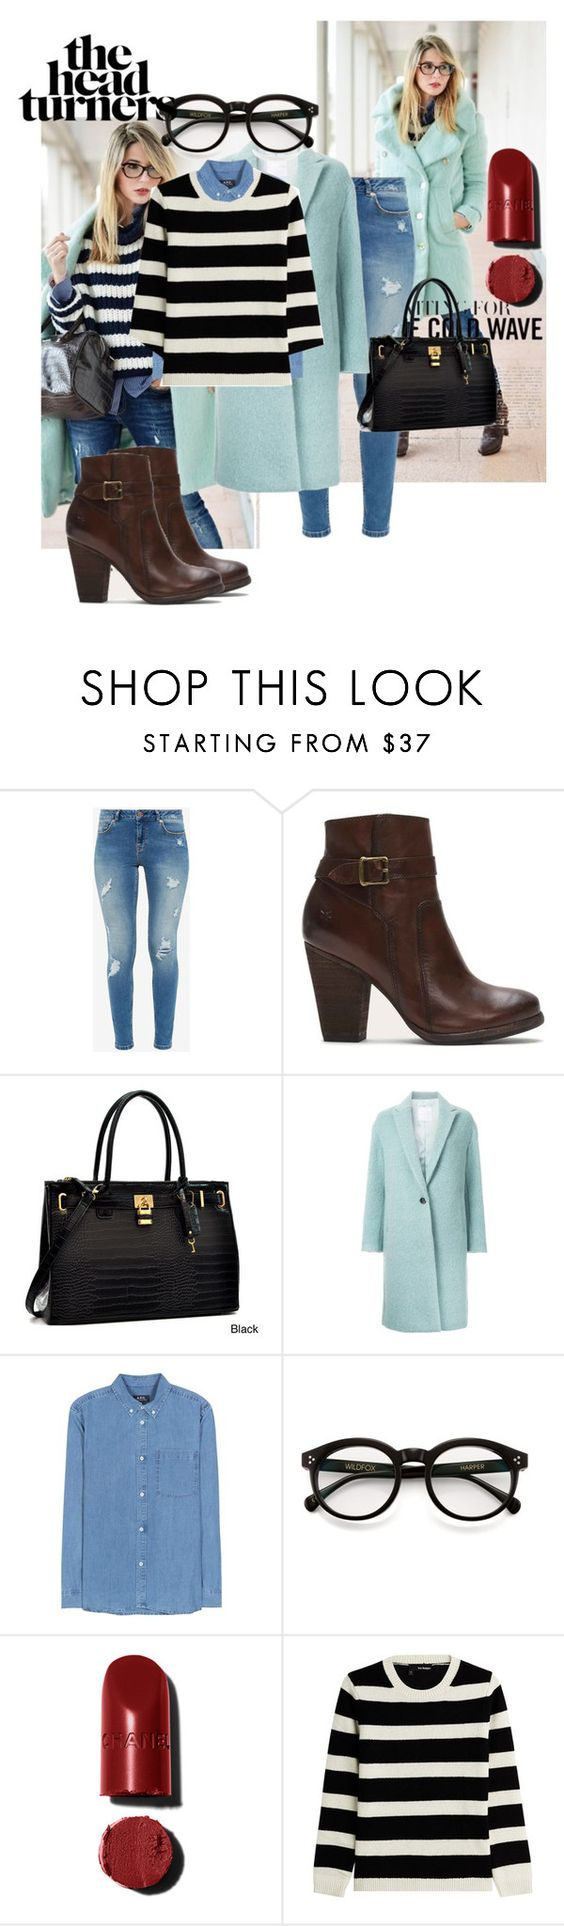 """""""Untitled #290"""" by love-dlv ❤ liked on Polyvore featuring Ted Baker, Frye, Dasein, CITYSHOP, A.P.C., Wildfox and The Kooples"""